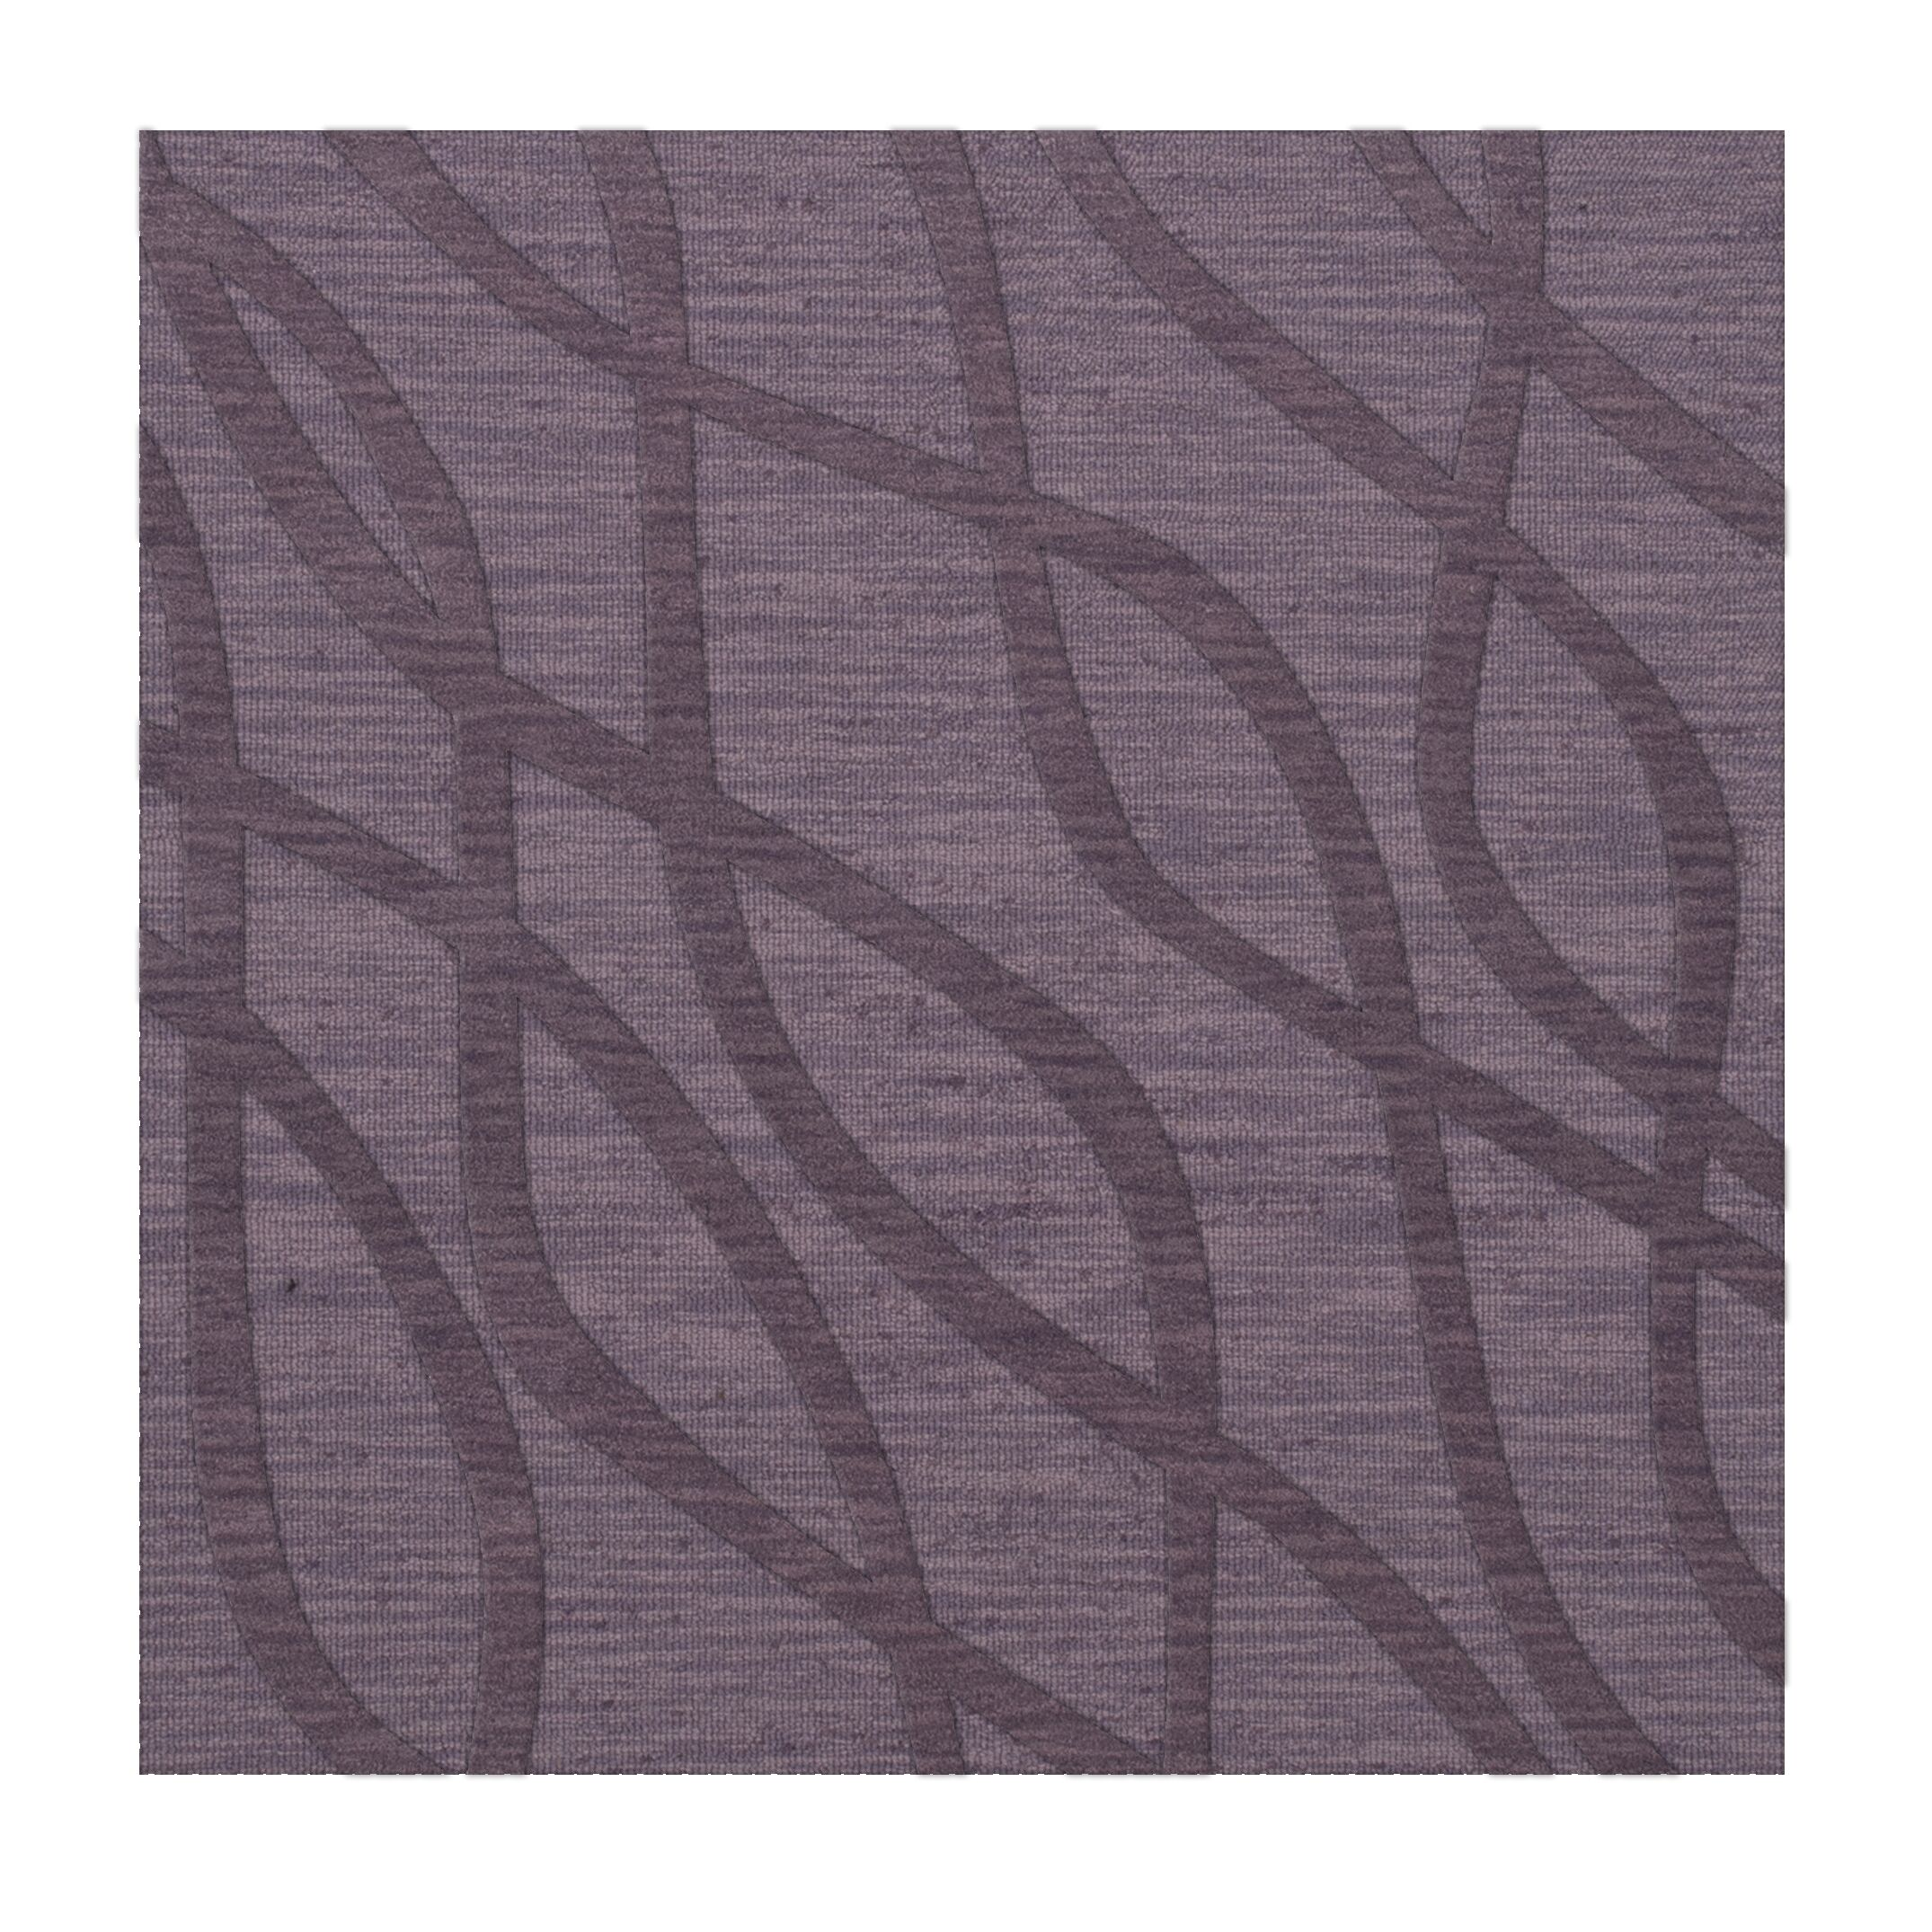 Dover Tufted Wool Viola Area Rug Rug Size: Square 10'